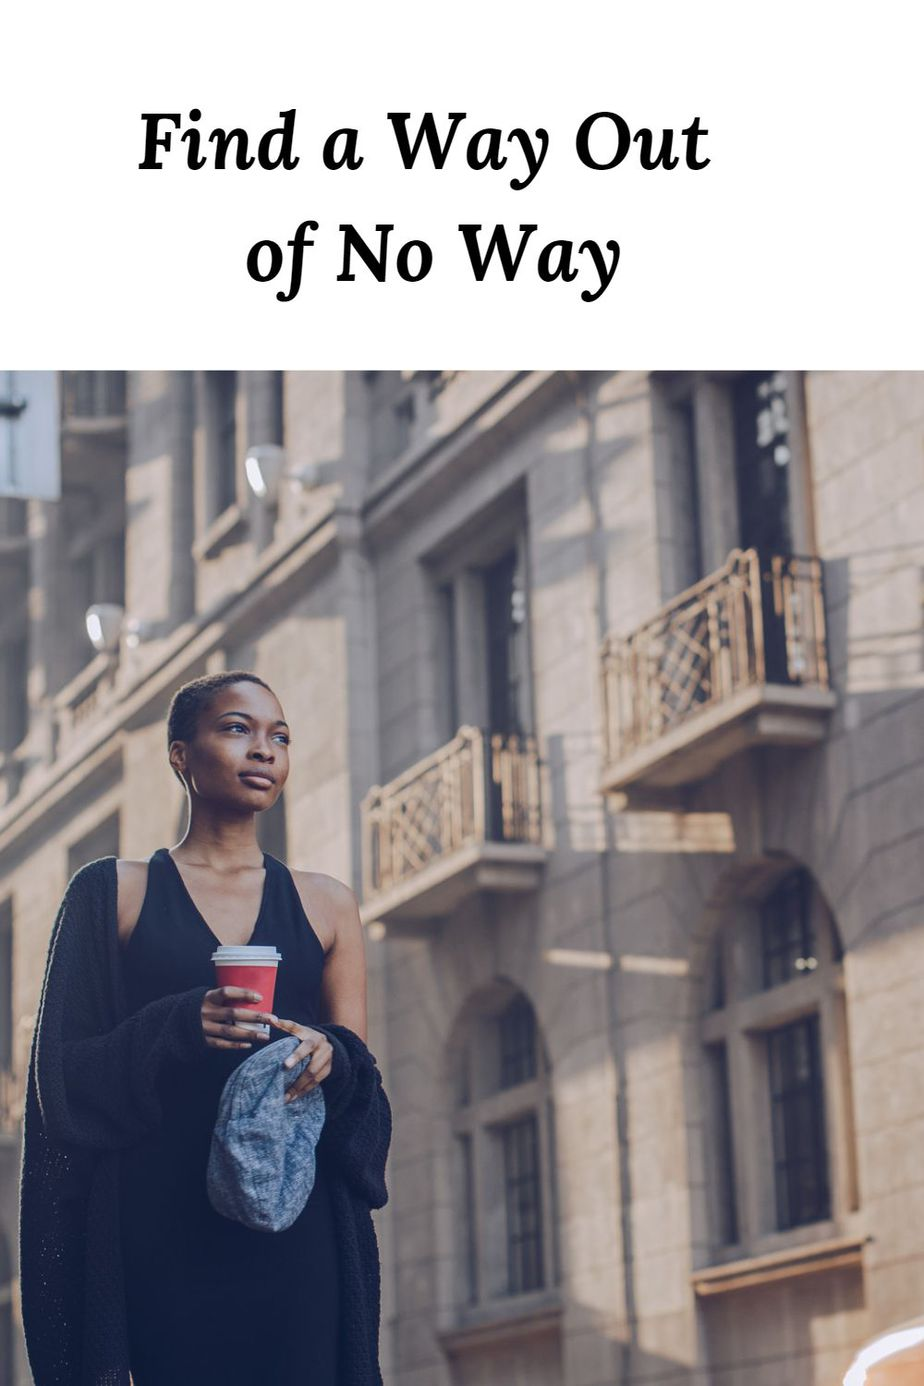 Find a Way Out of No Way